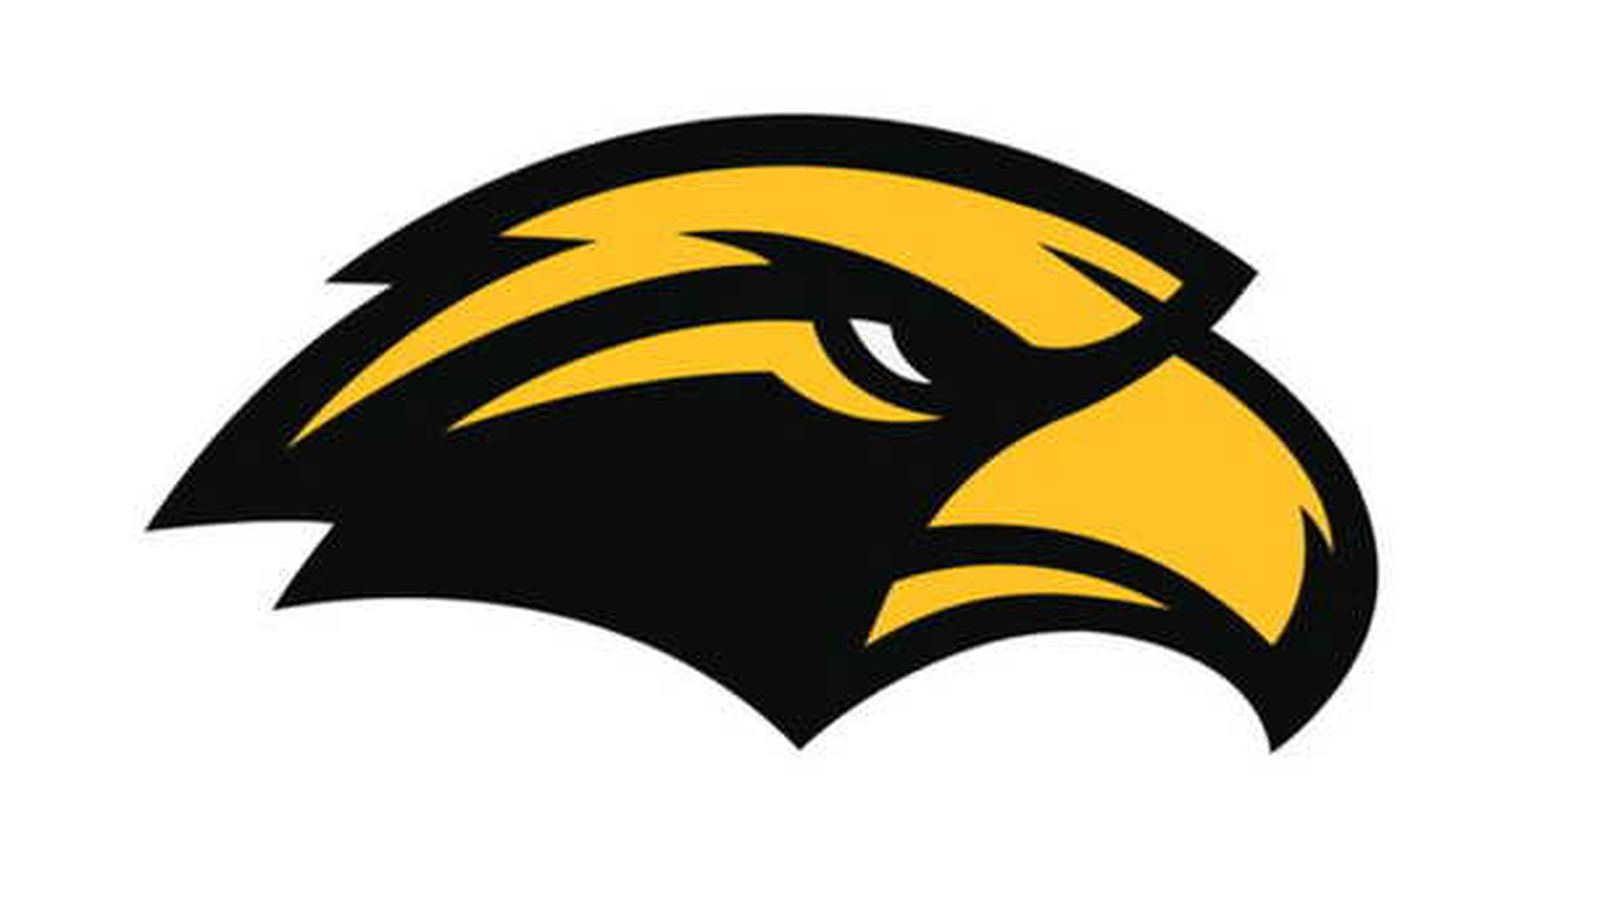 It is official, Southern Miss has a new logo - Underdog Dynasty